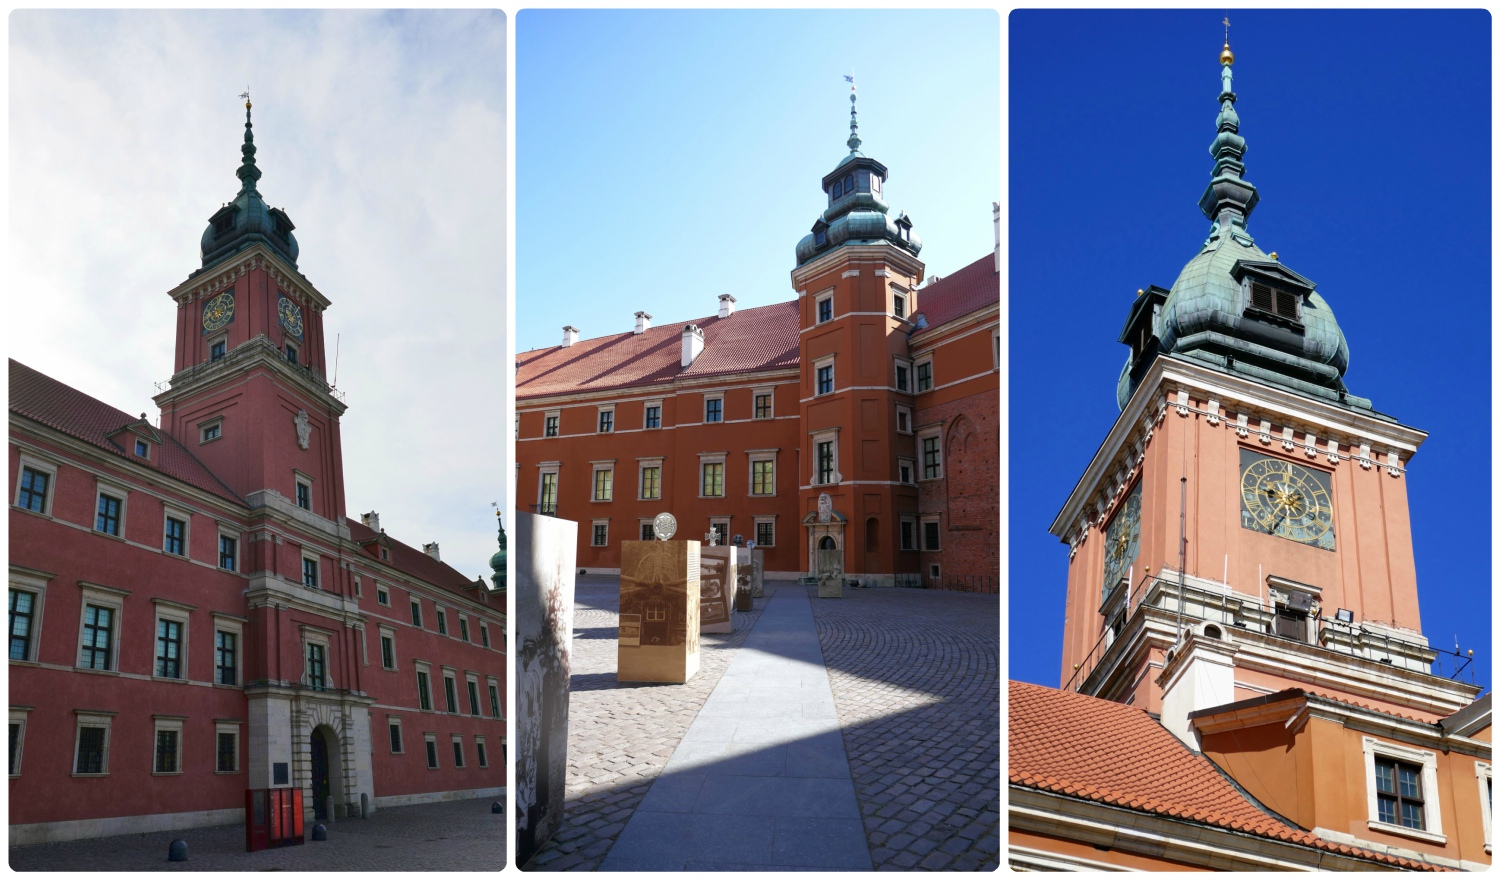 The Royal Castle can be found in Castle Square and can be enjoyed from the square, or from its center courtyard.